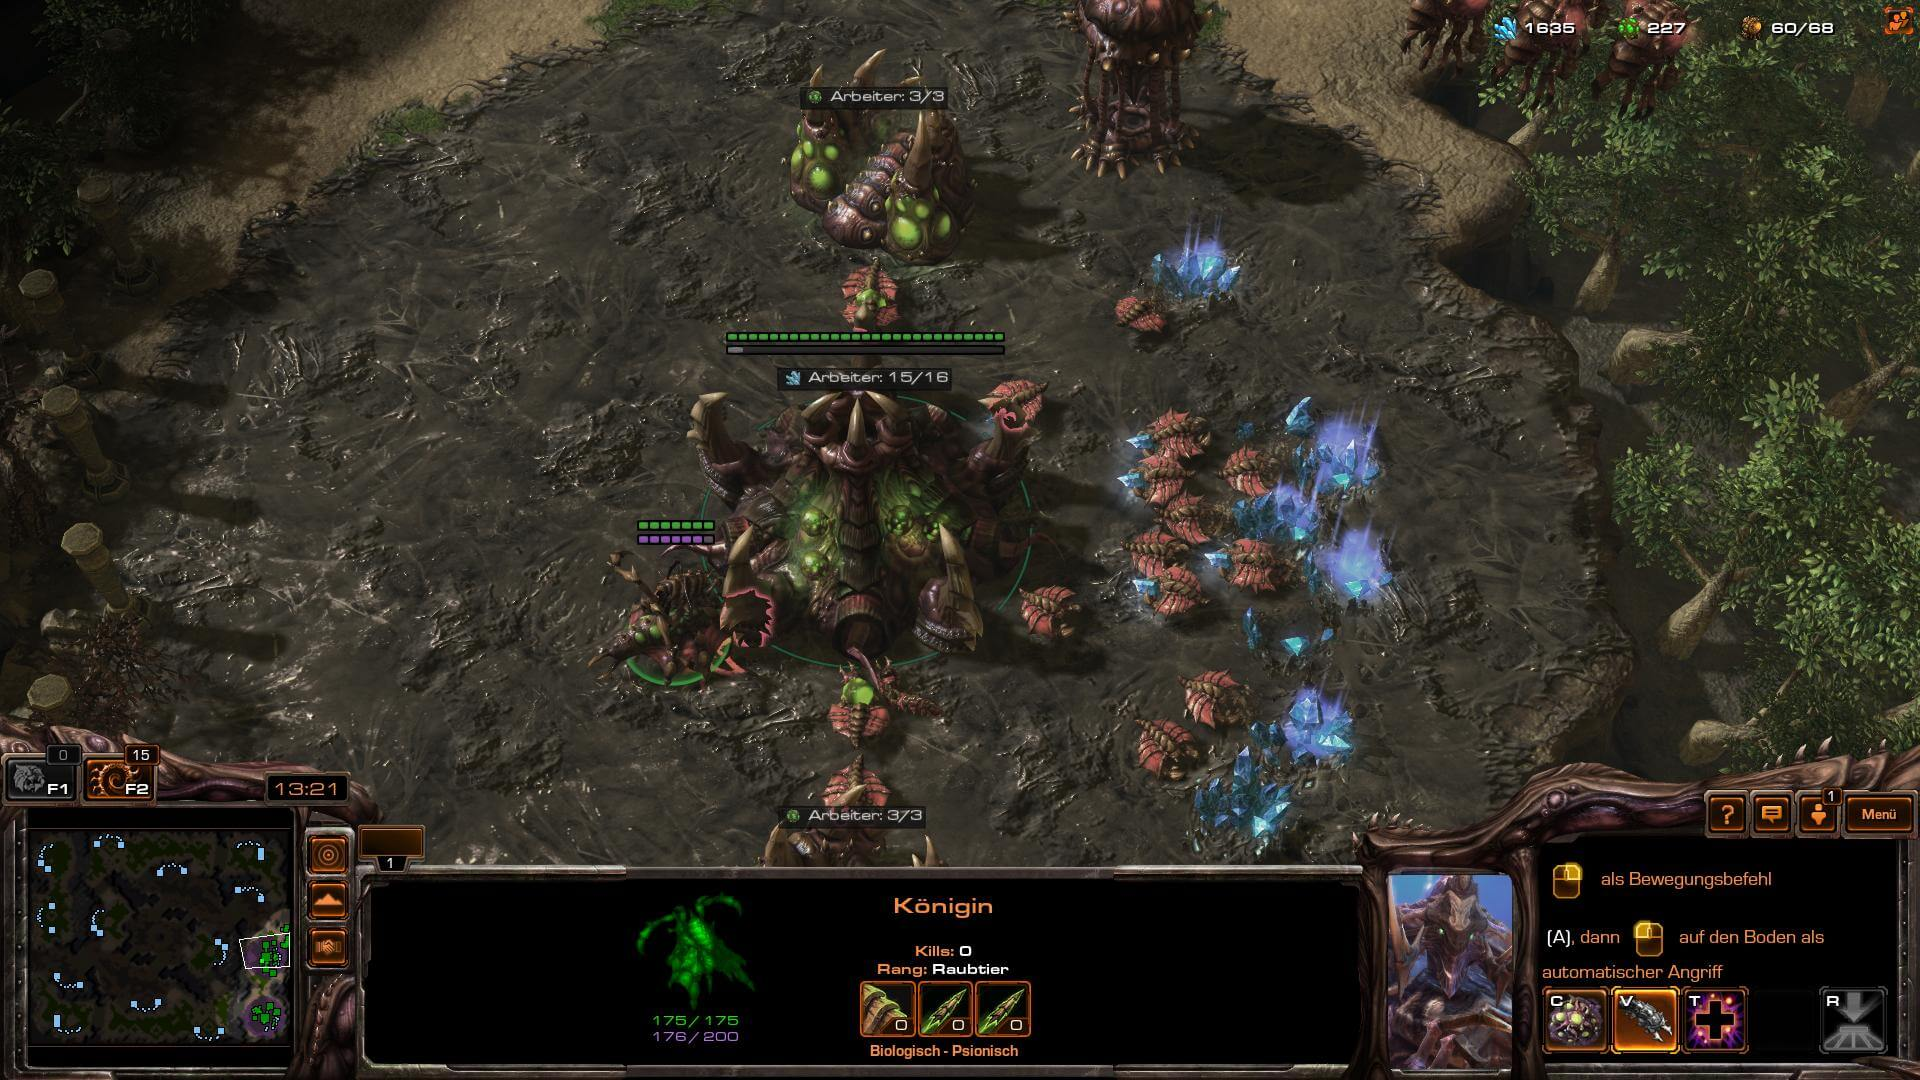 Starcraft 2 battlenet